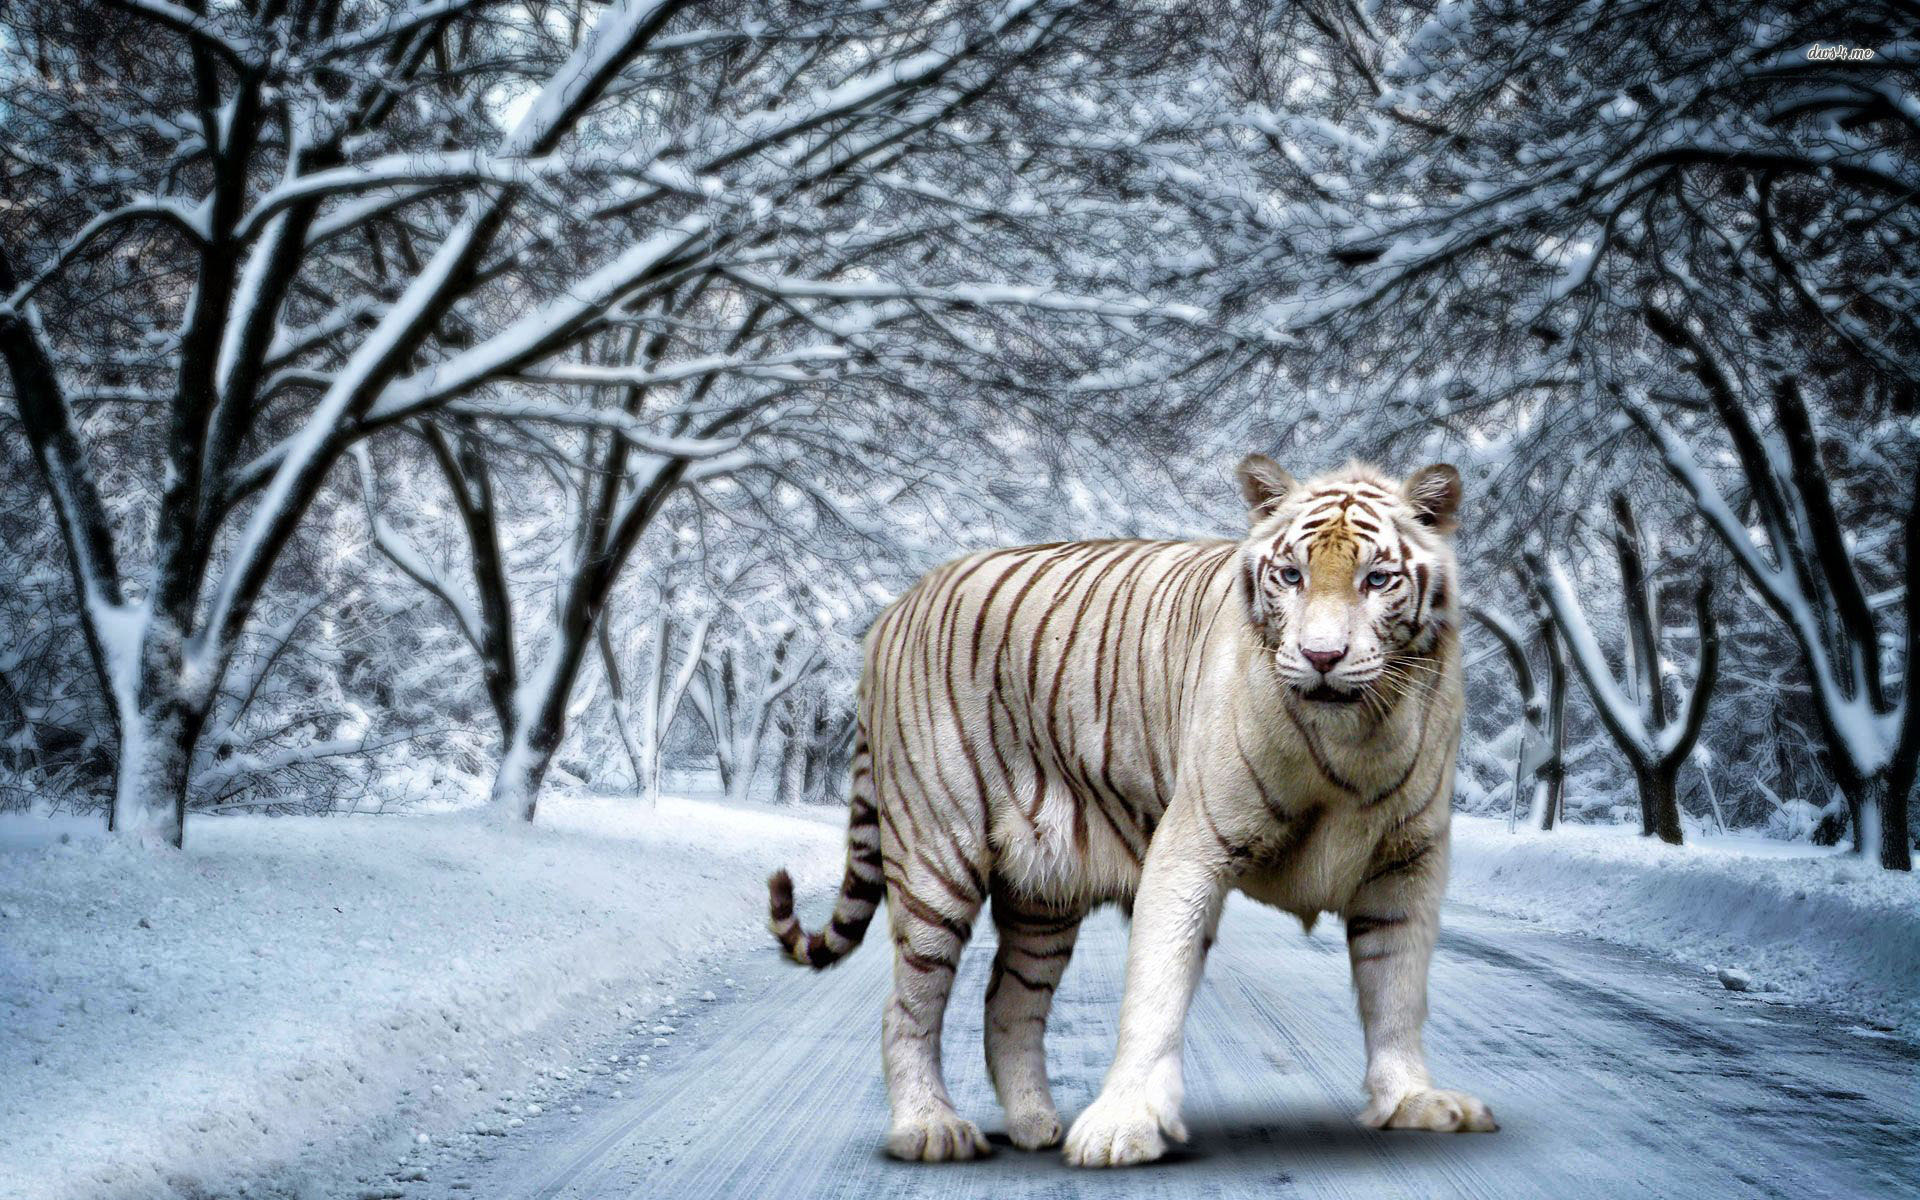 Tiger hd wallpapers free download - Tiger hd wallpaper for pc ...